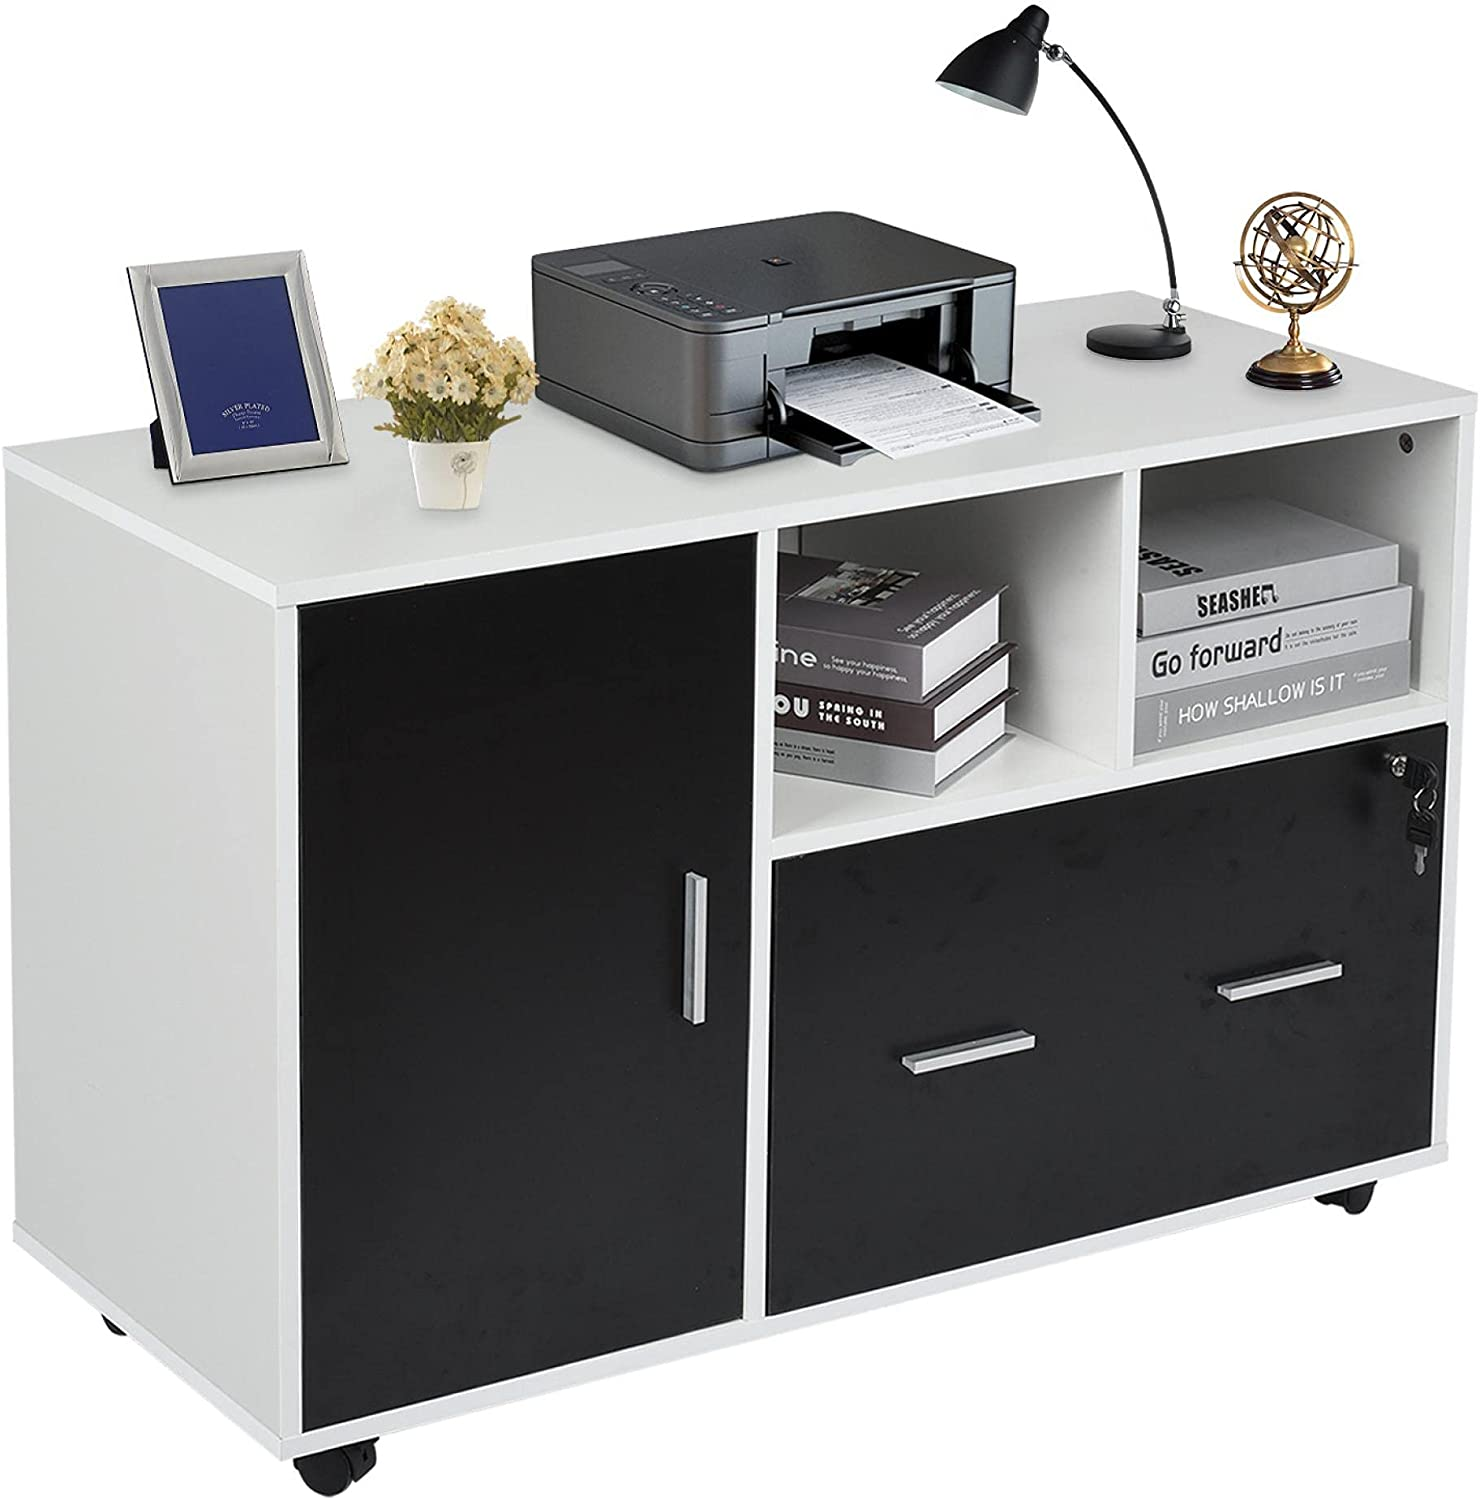 Wood File Cabinet with Discount New arrival is also underway Lock and Ca Lateral Mobile Filing Drawer